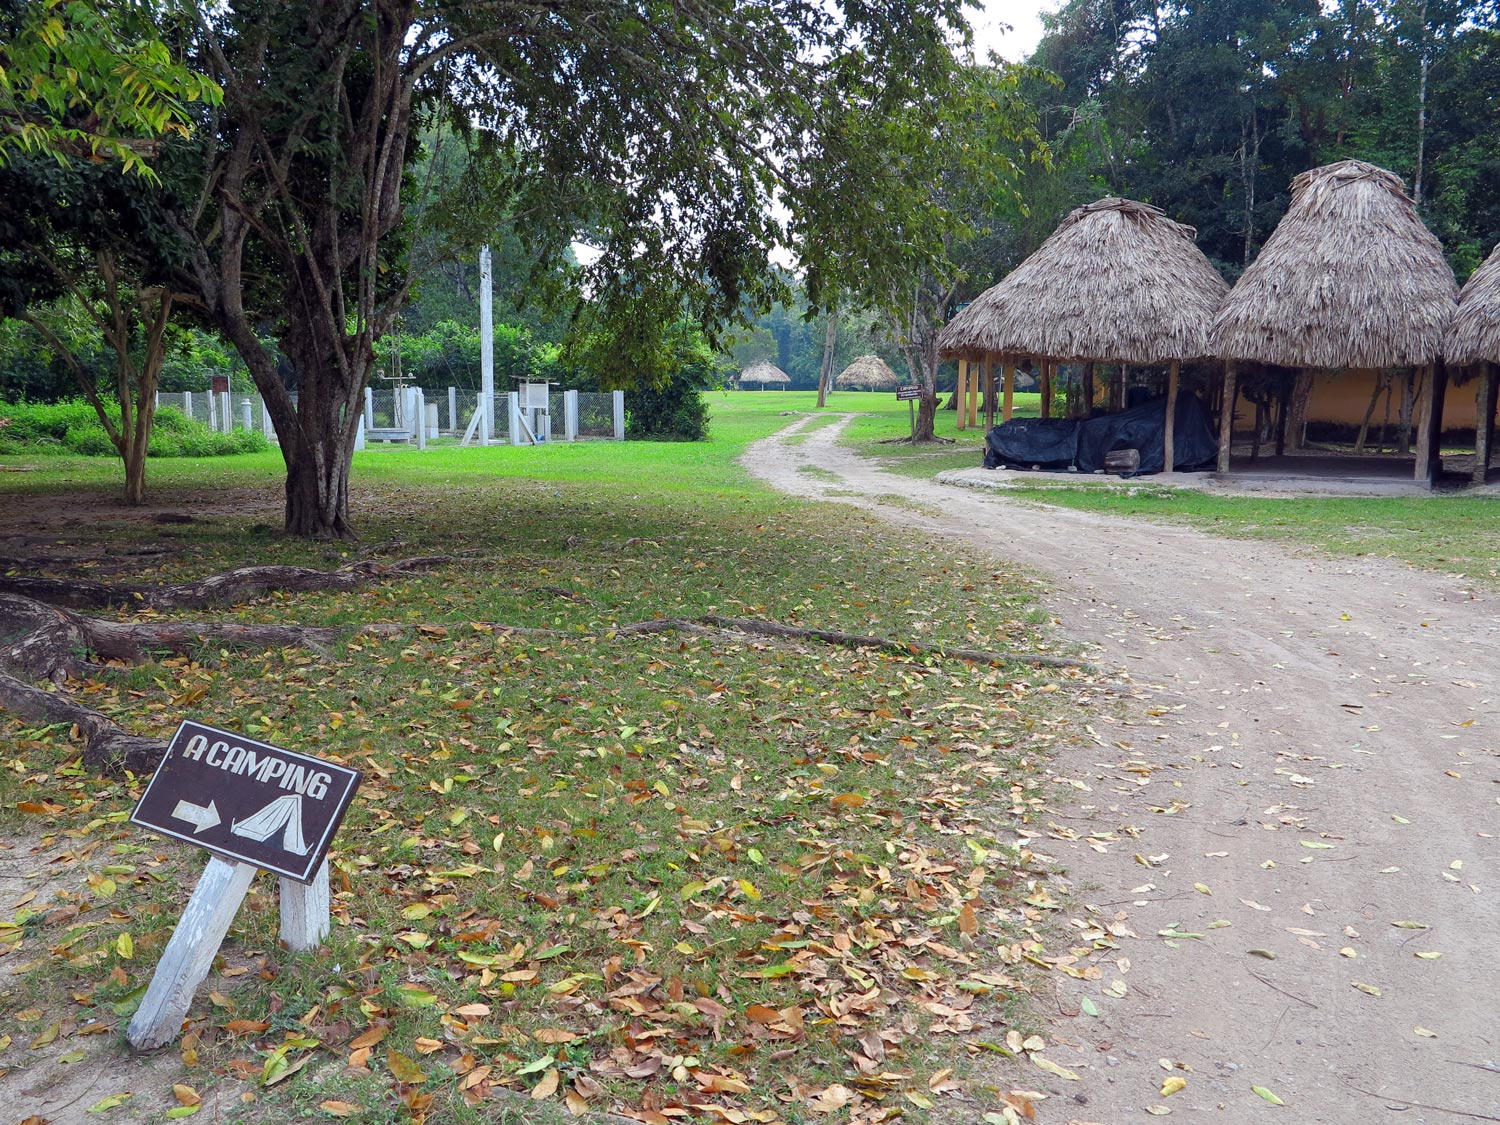 Tikal National Park Accommodations - camping